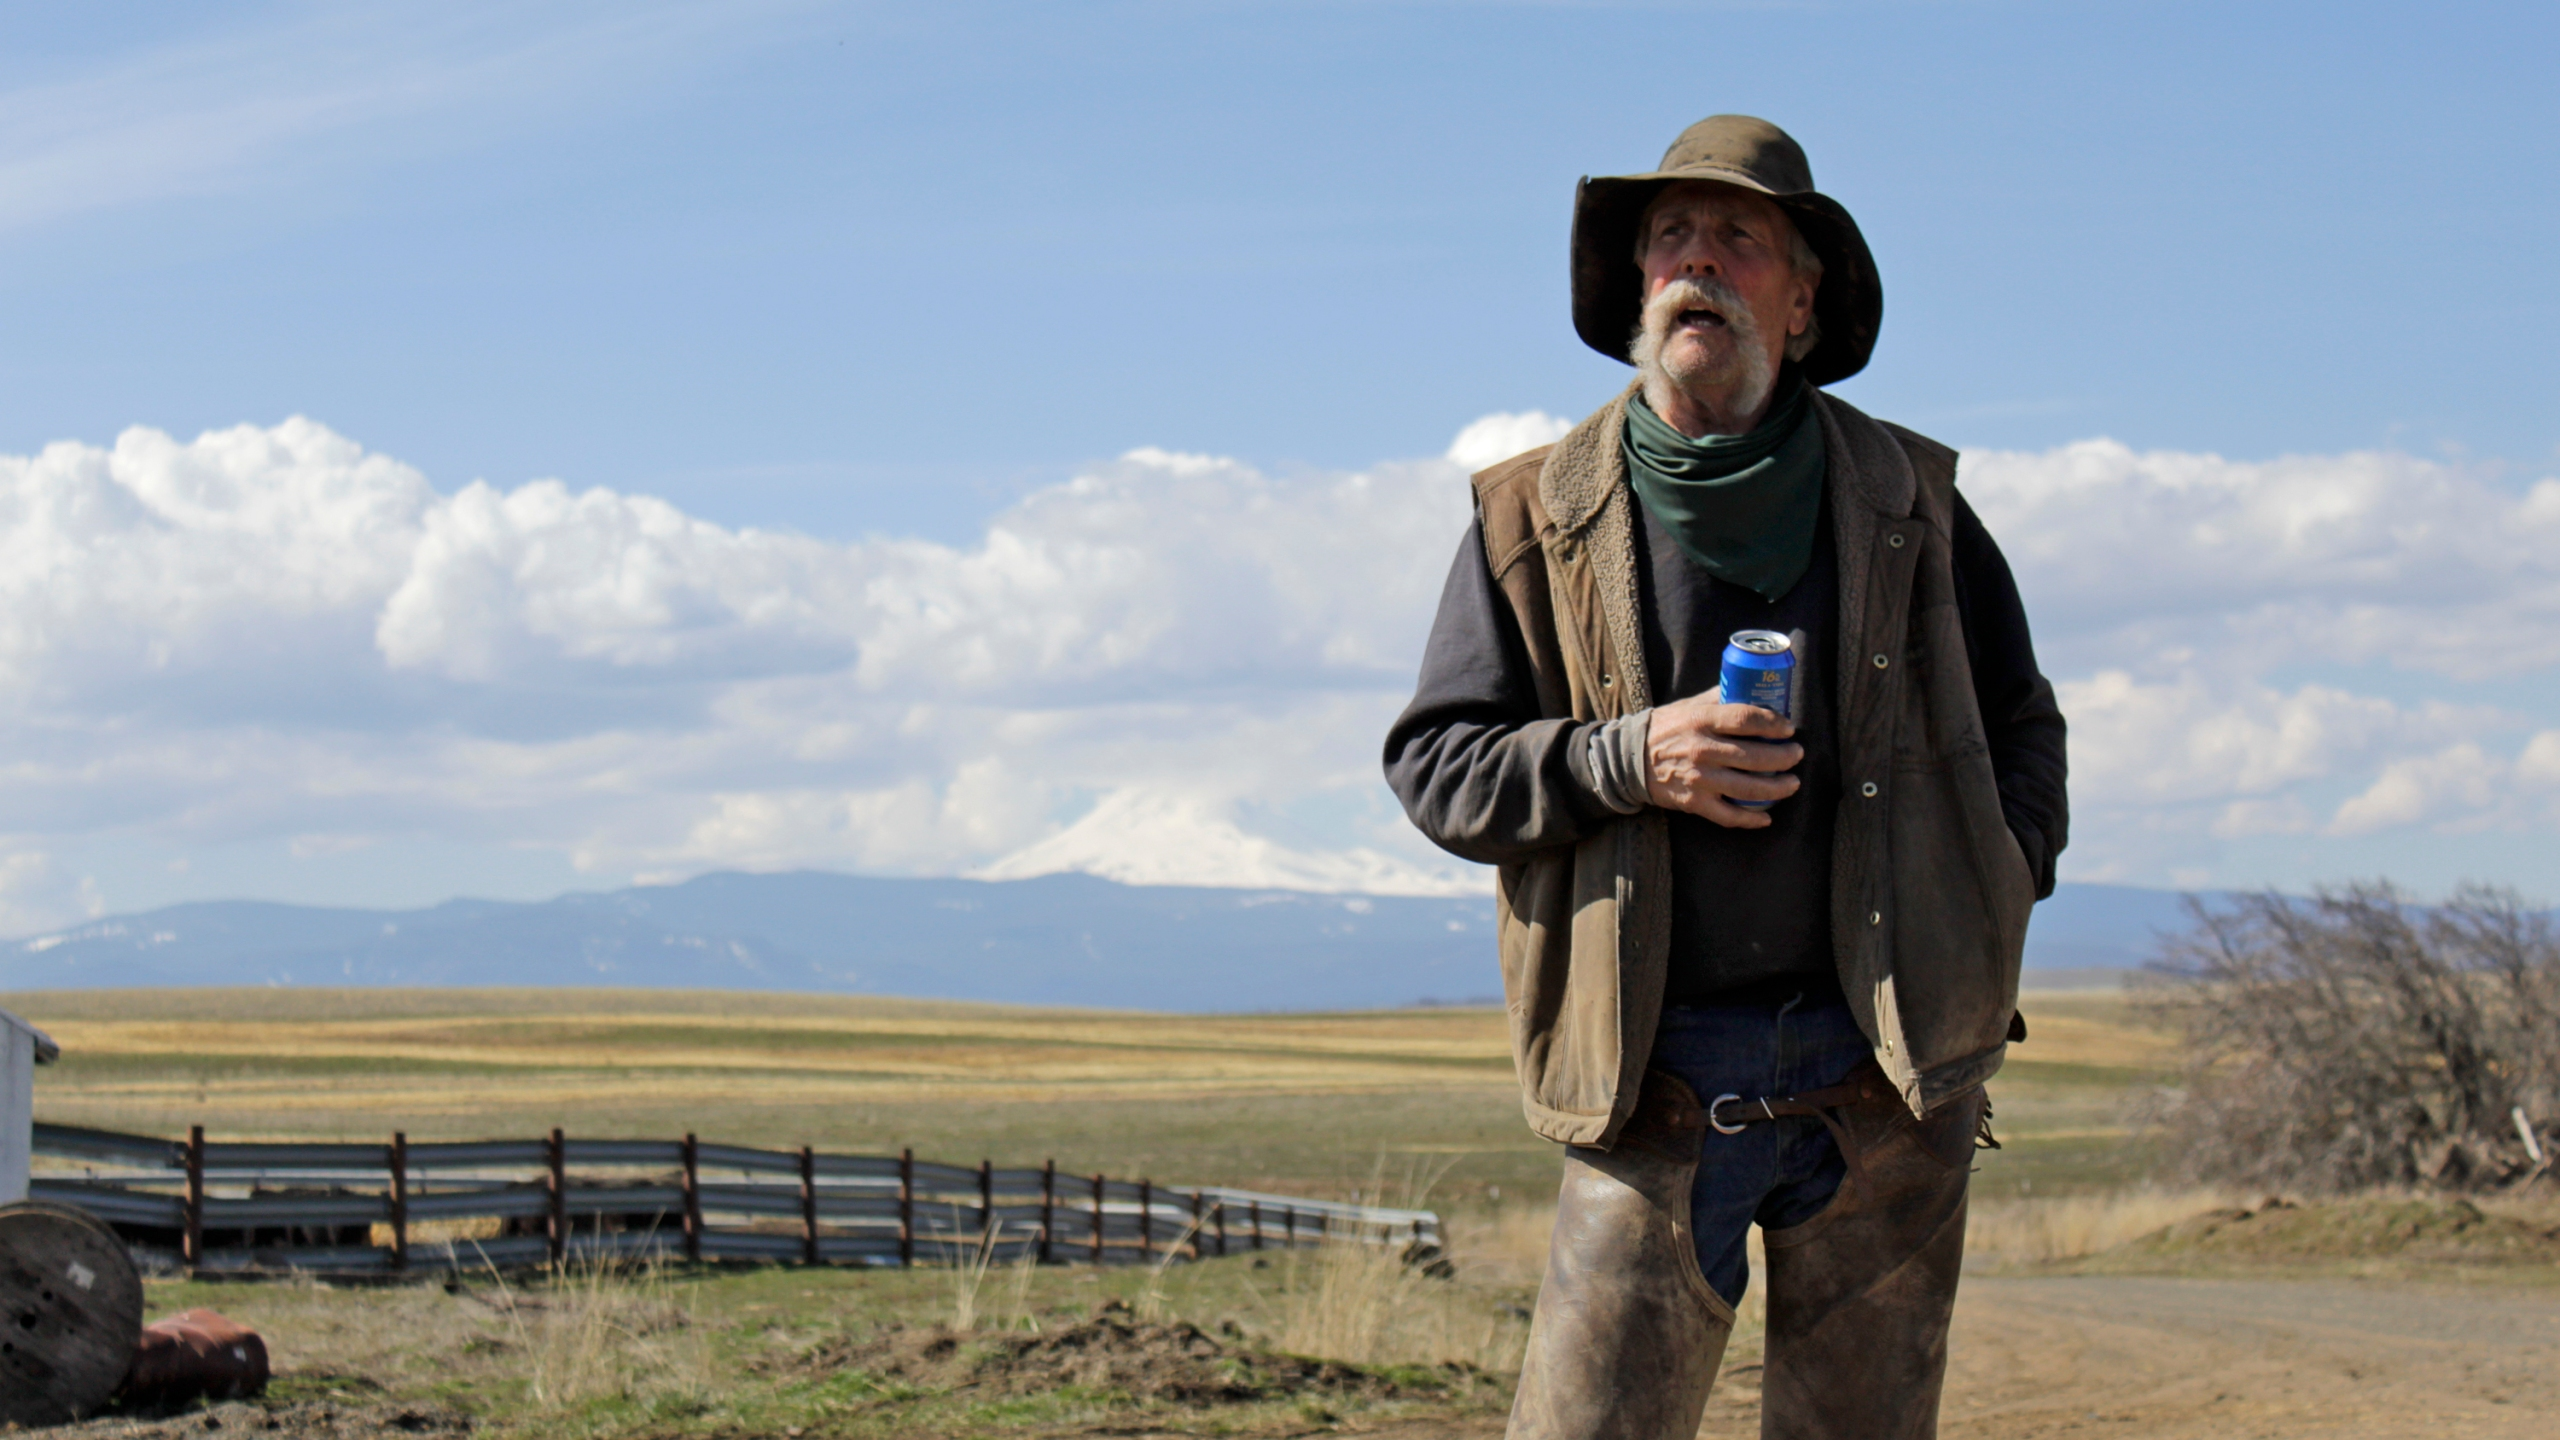 Cattle rancher Mike Filbin stands on his property in Dufur, Ore., after herding some cows and talks about the impact the new coronavirus is having on his rural community. Tiny towns tucked into Oregon's windswept plains and cattle ranches miles from anywhere in South Dakota might not have had a single case of the new coronavirus yet, but their residents fear the spread of the disease to areas with scarce medical resources, the social isolation that comes when the only diner in town closes its doors and the economic free fall that's already hitting them hard. (AP Photo/Gillian Flaccus)